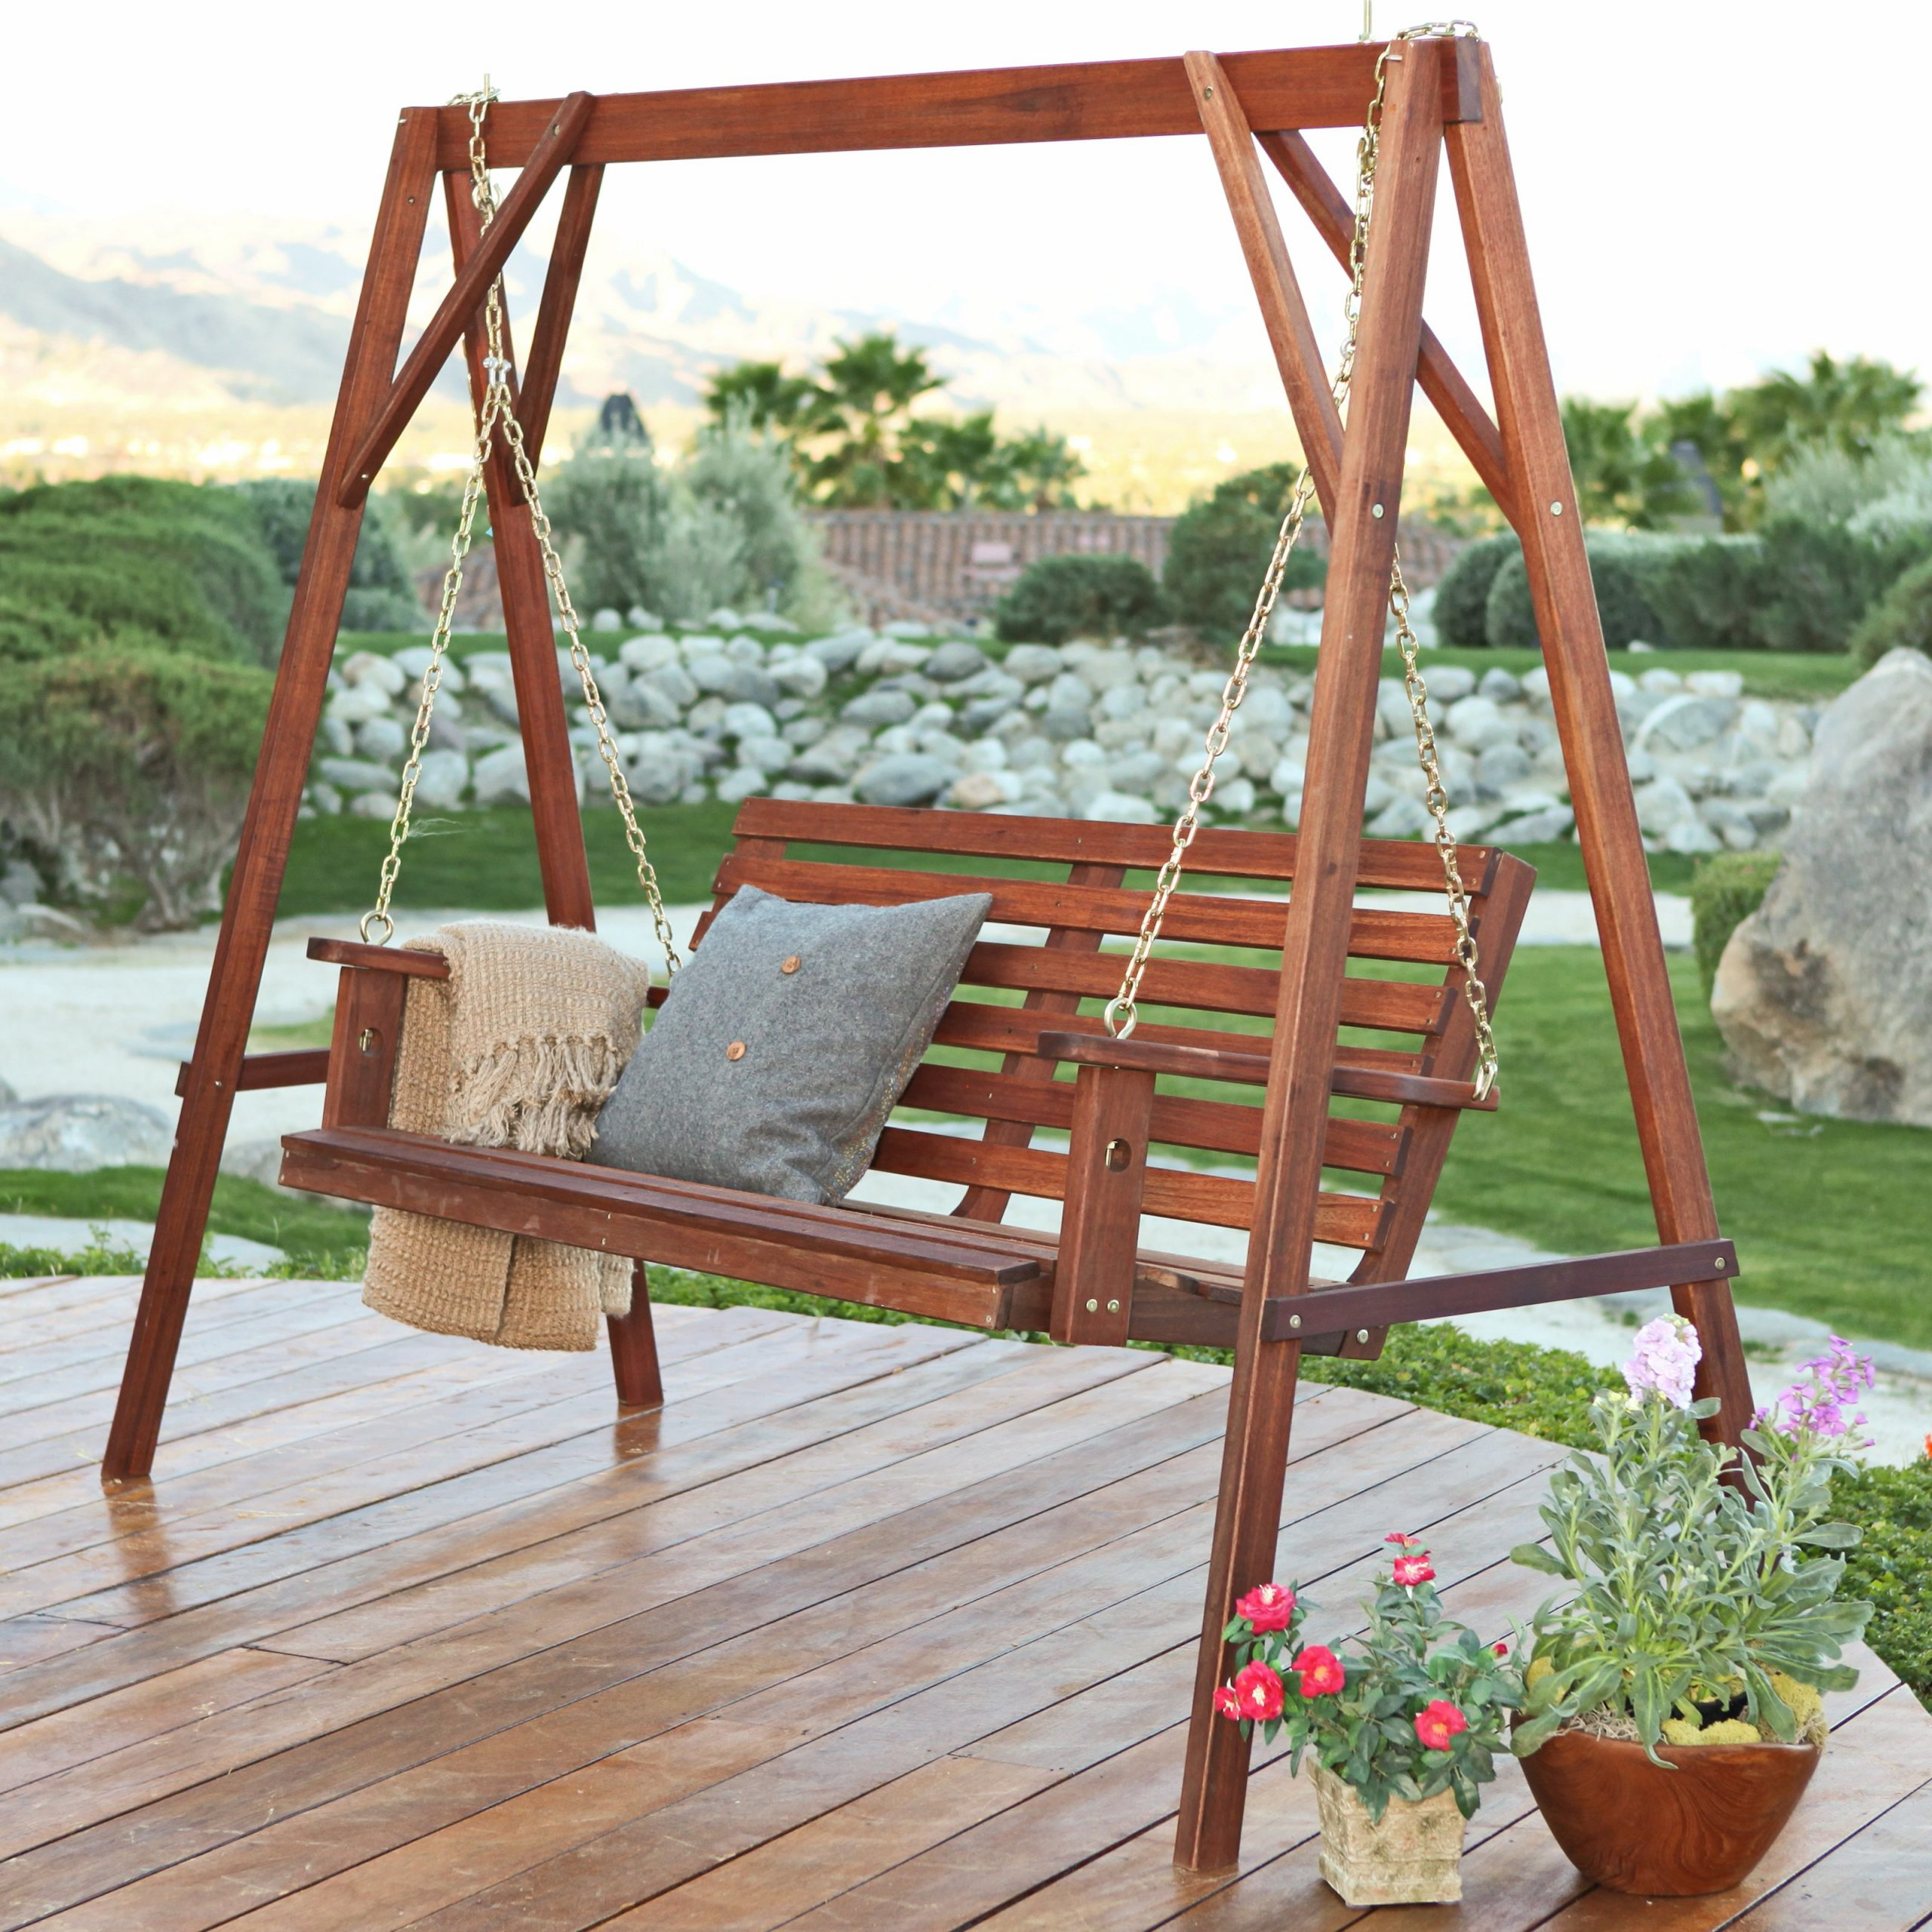 Belham Living Richmond Straight Back Porch Swing & Stand Set – Walmart Regarding Recent Porch Swings With Stand (Gallery 8 of 25)